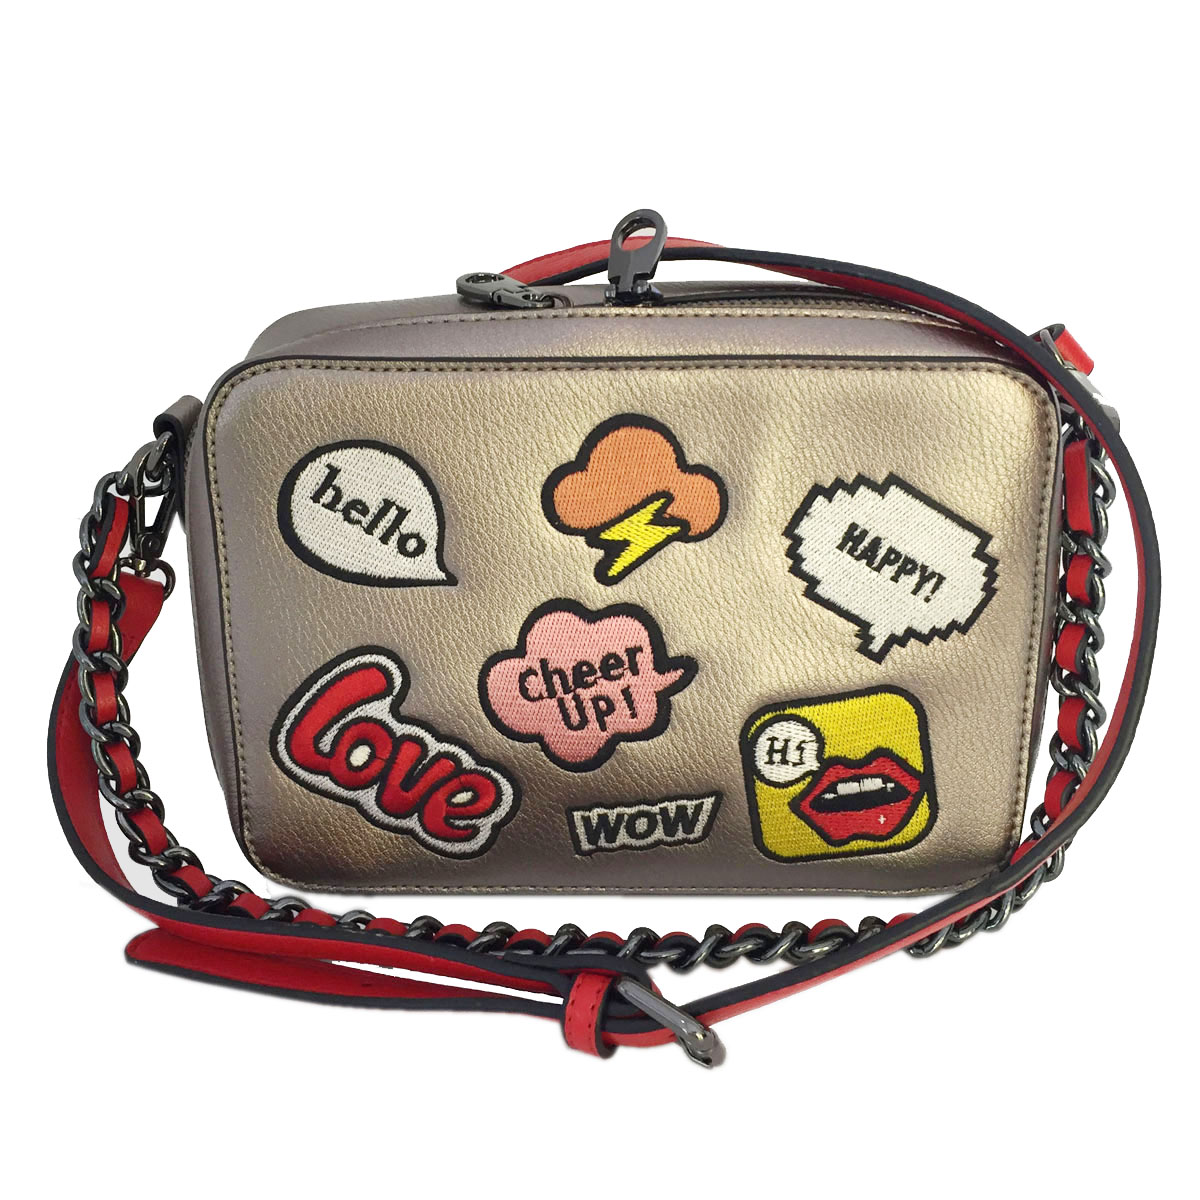 Small Crossbody Bag with Embroiery Patch